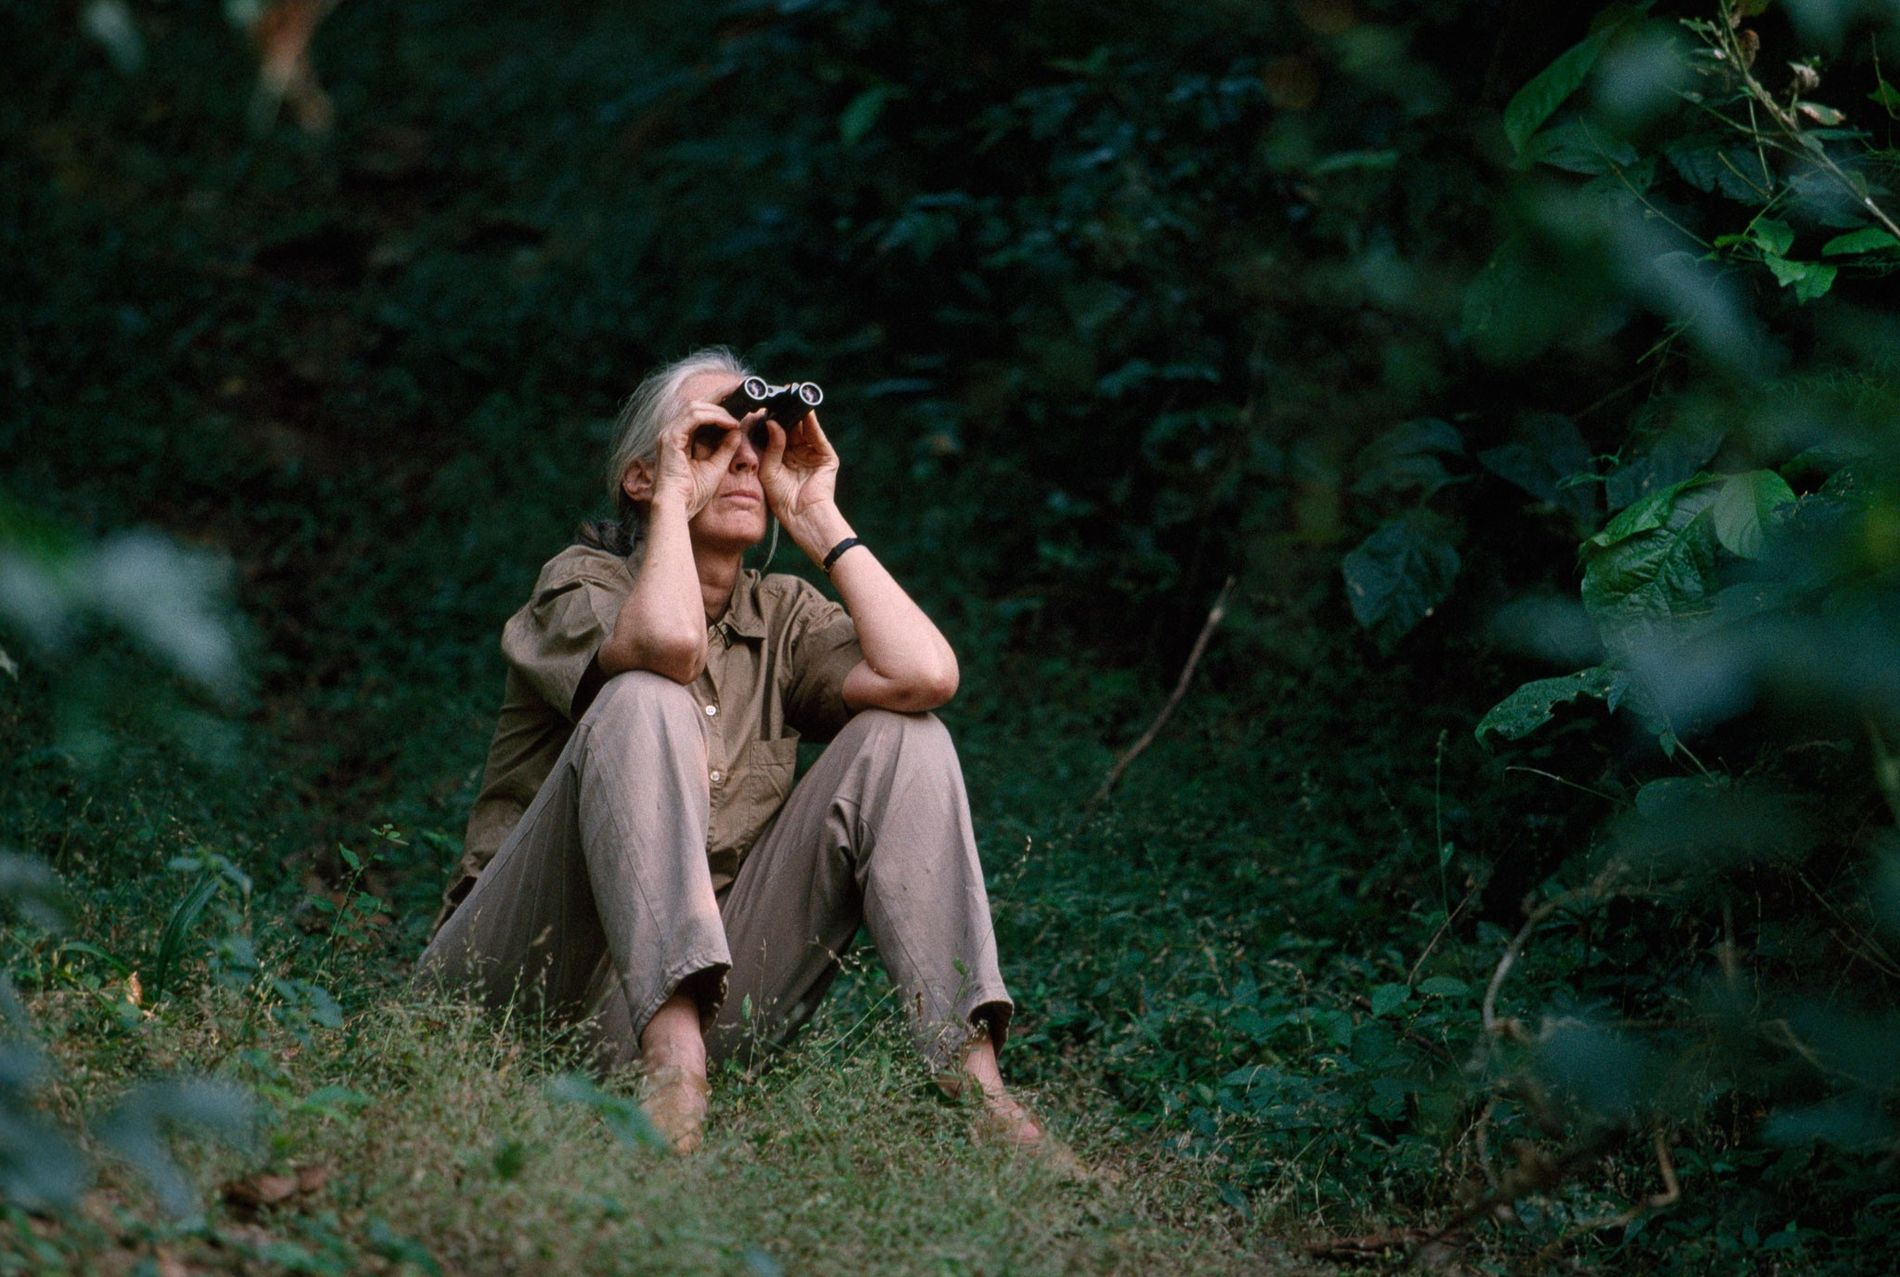 <p>Jane Goodall no longer spends much time at Gombe Stream National Park because of her globe-trotting conservation efforts. When she visits, she still finds great joy in watching the chimps.</p> <p>&nbsp;</p>